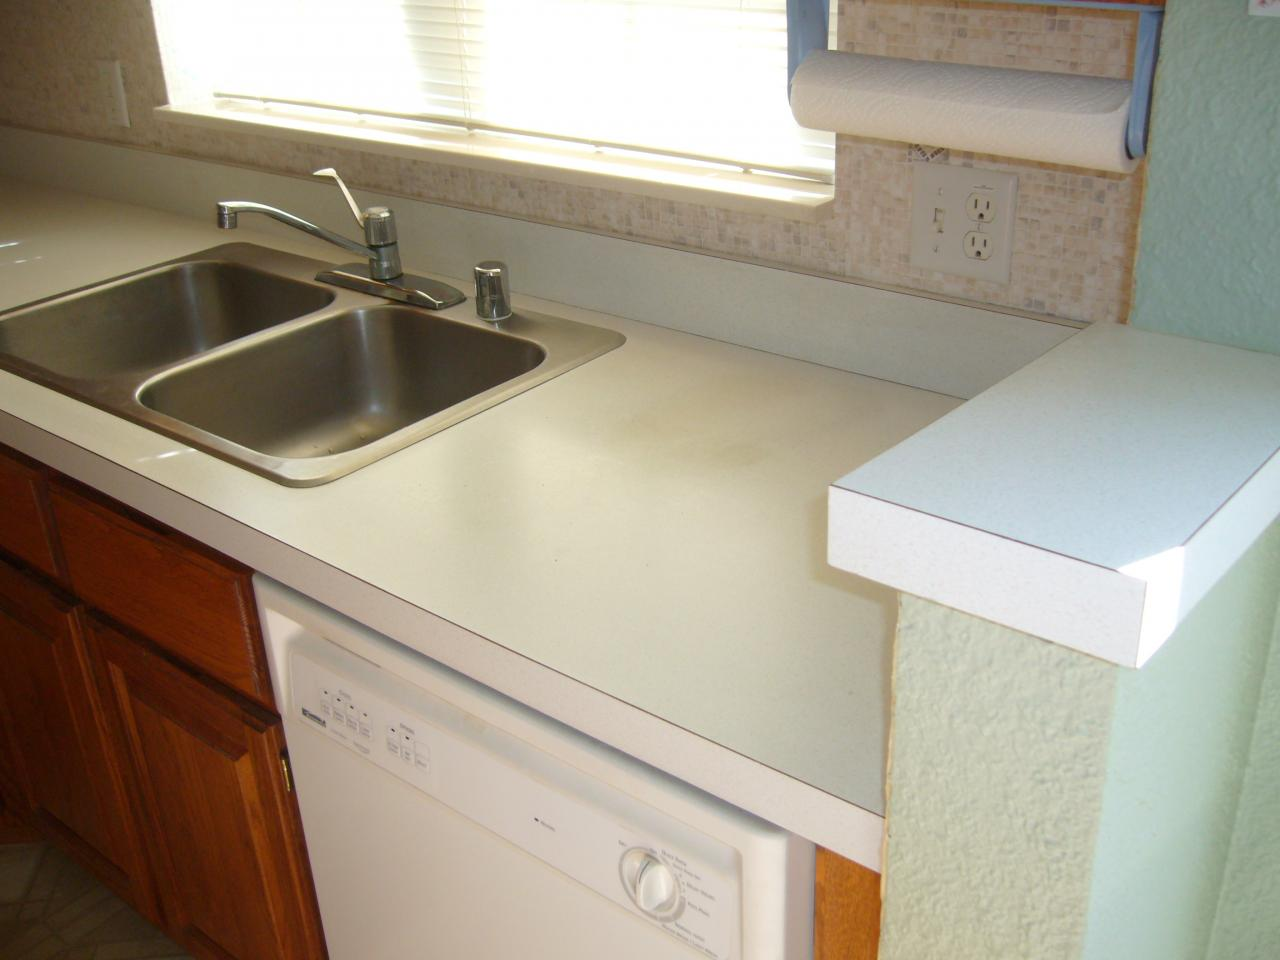 Kitchen Laminate Countertops Laminate Kitchen Countertops Pictures Ideas From Hgtv Hgtv Pin